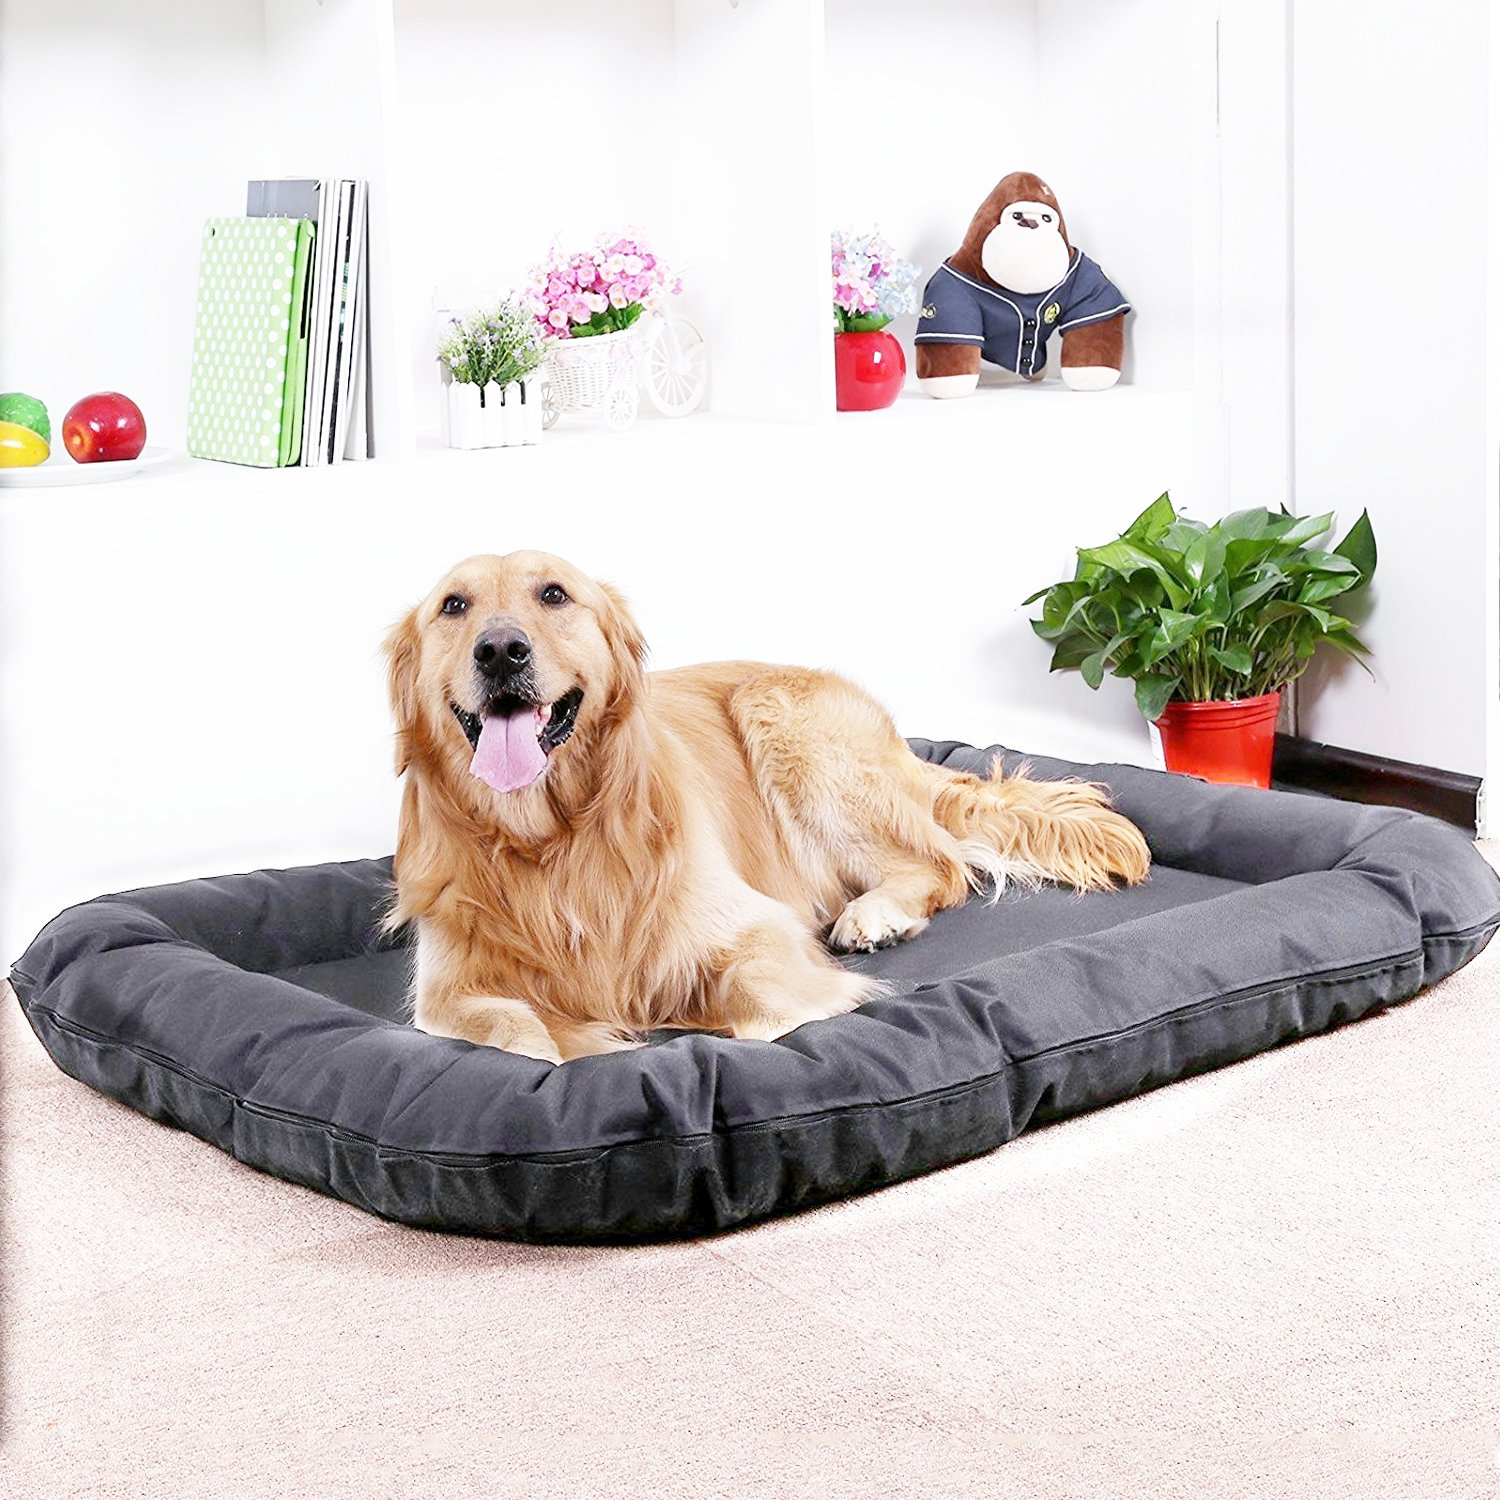 AikoPets Dog cushion Pet Bolster Bed Deluxe Orthopedic Chaise Couch for Cats and Dogs - Available in 2 sizes (XL:48'' x 34'' x 6'')